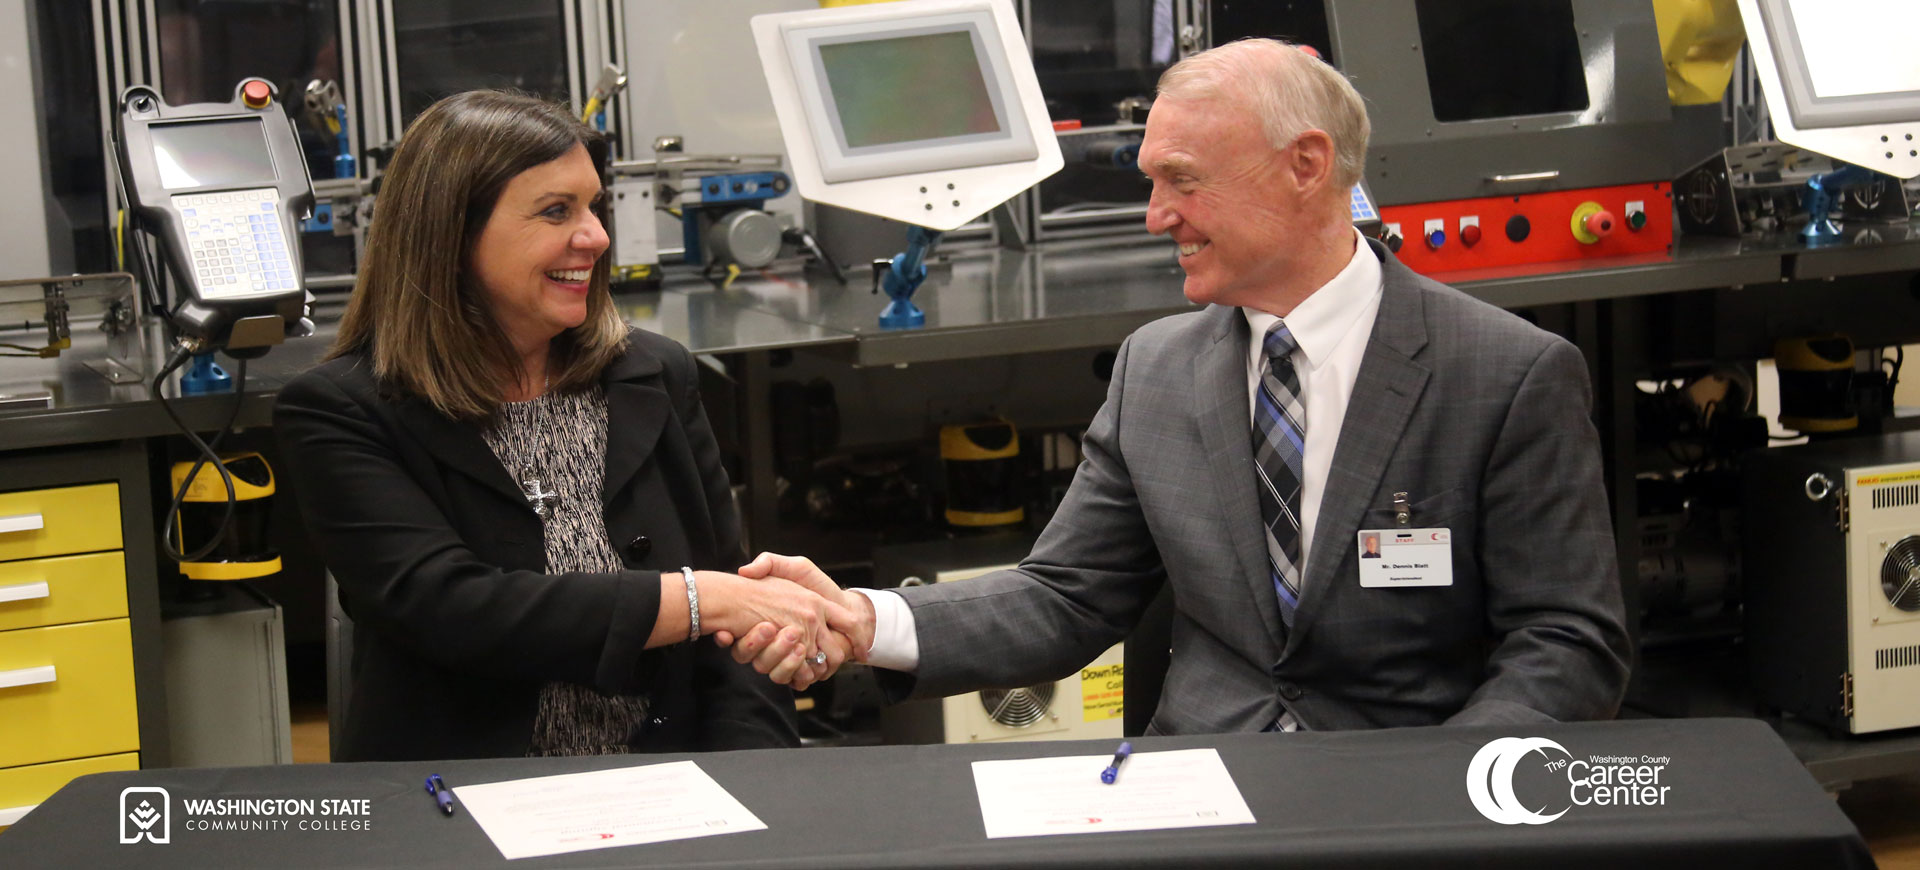 Washington State Community College (WSCC) and Washington County Career Center (WCCC) announced an innovative partnership that will create an automation and robotics pathway to benefit local high school students. The program will allow career center students to utilize the robotics and engineering labs at the college to eApril 8, 2021arn high school credit, college credit, and receive recognized industry credentials.